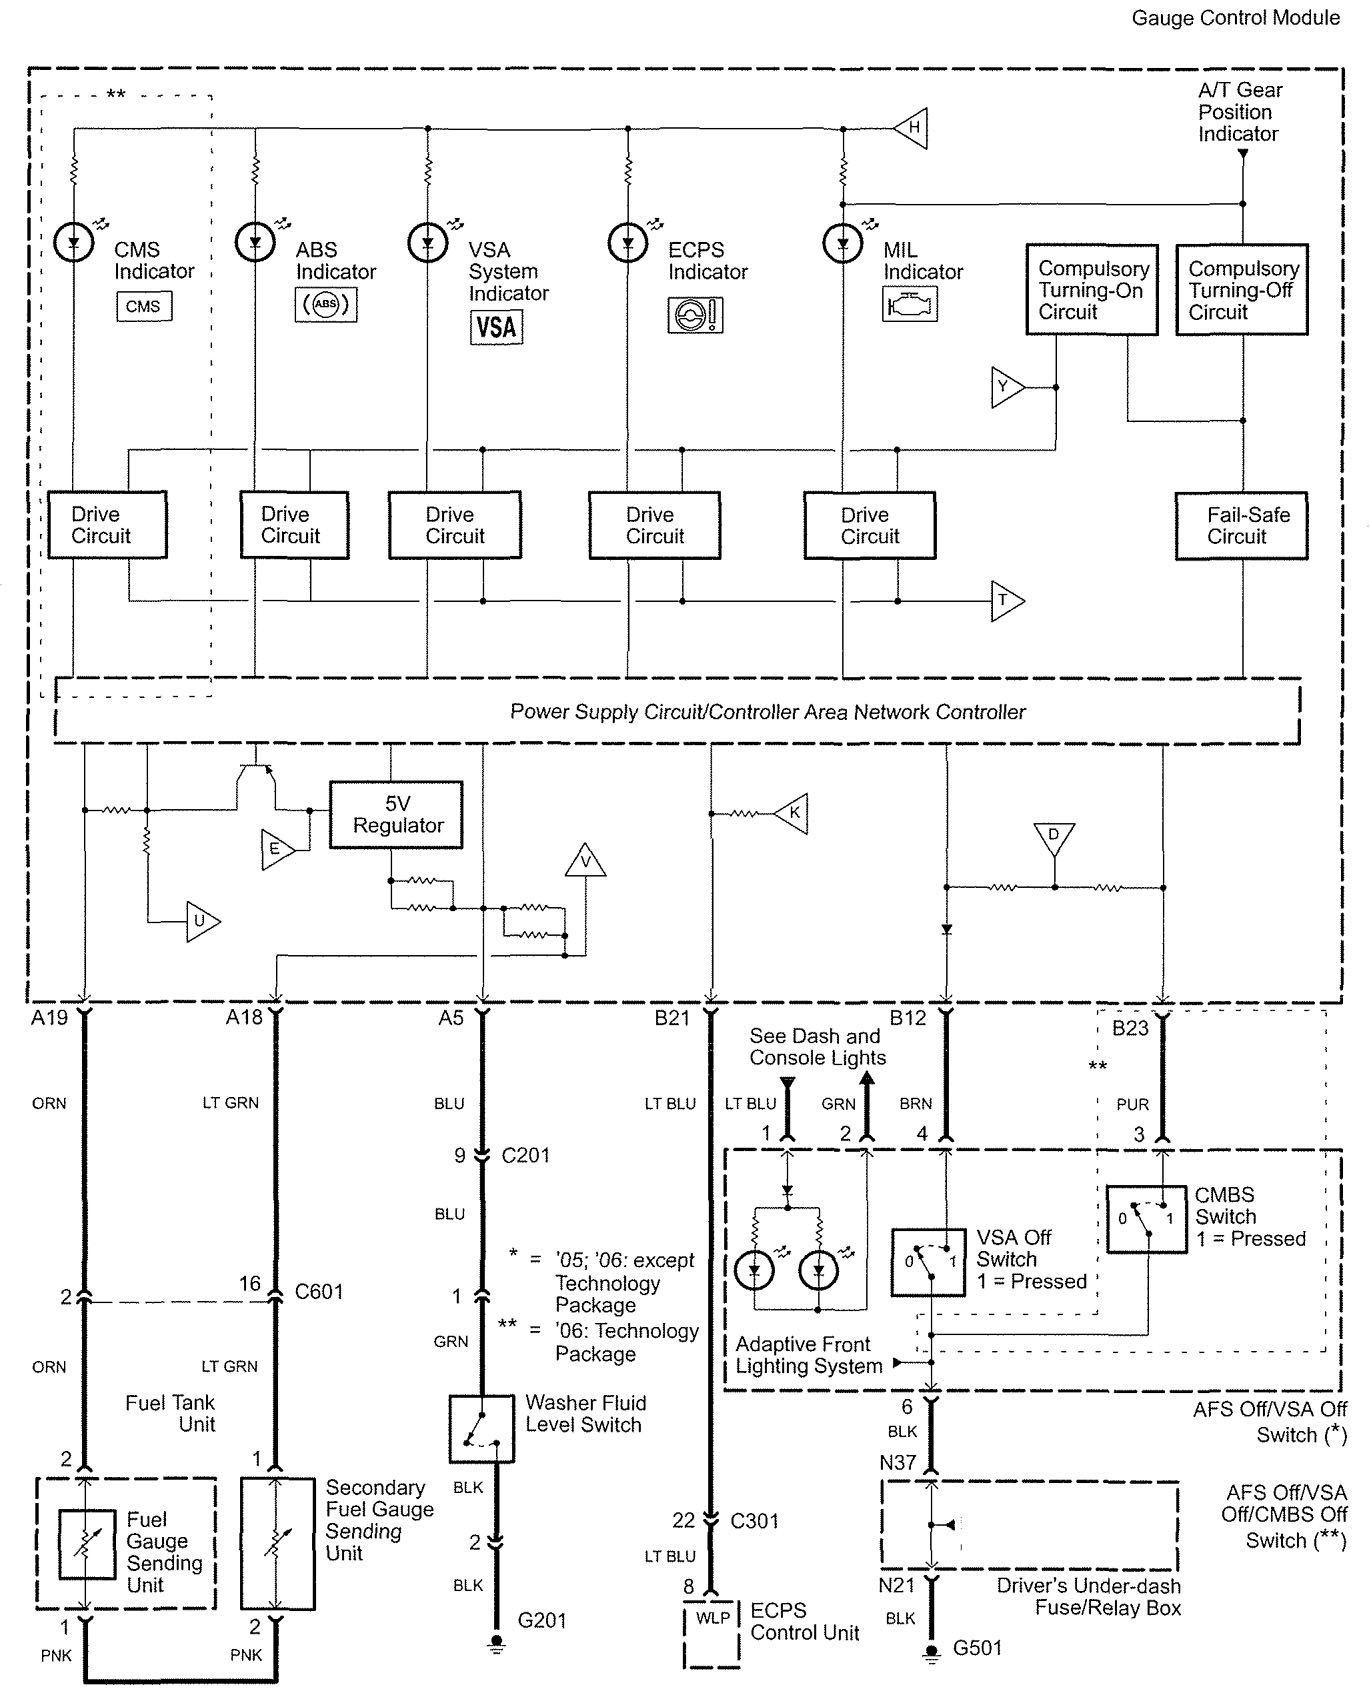 2005 Toyota Prius Fuse Box Manual Of Wiring Diagram 05 Kenworth W900 Cover For Buick Terraza